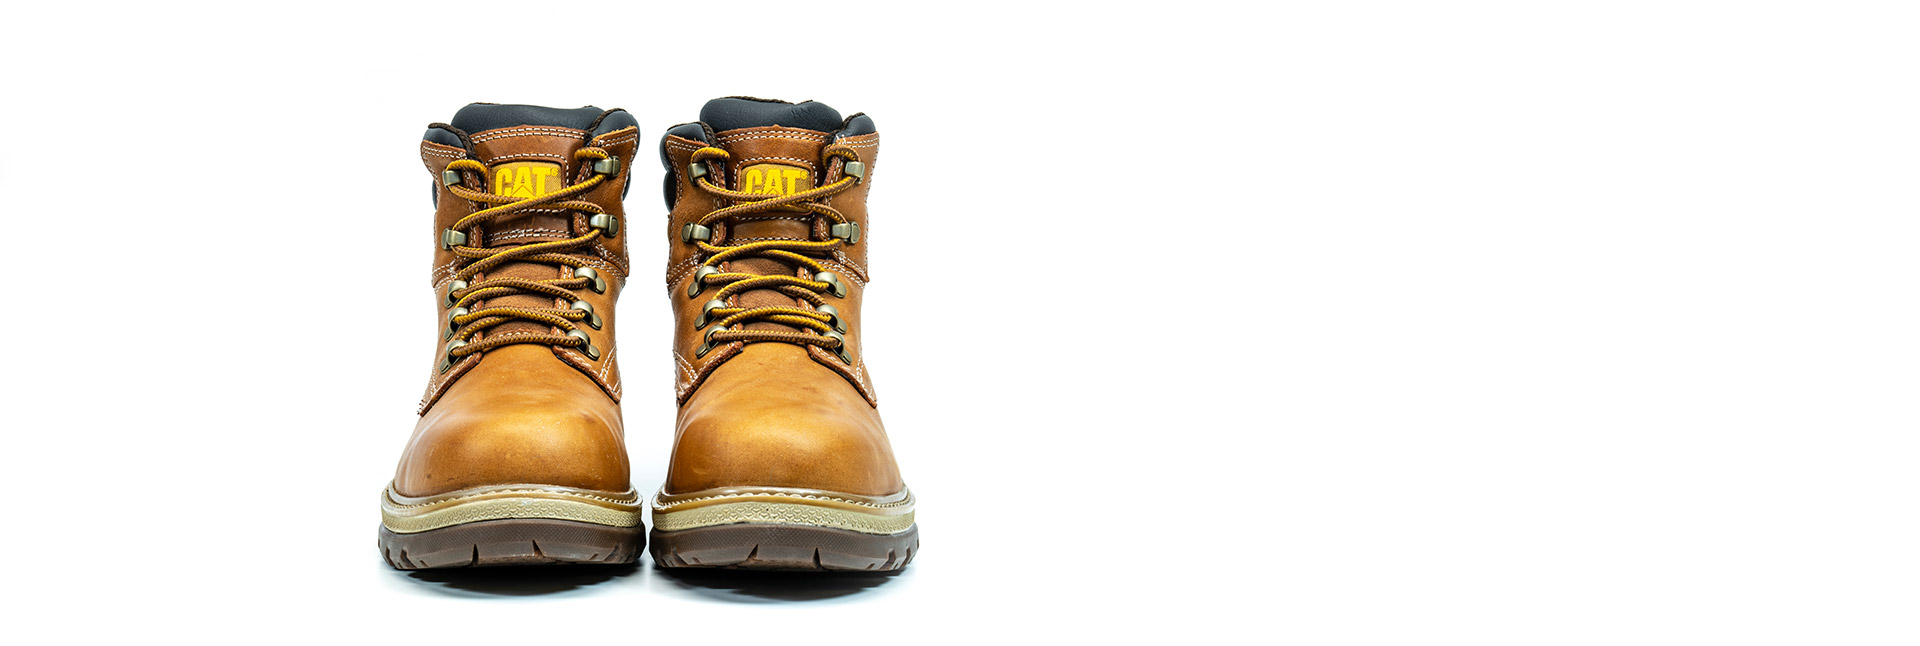 1ac09e3e66f Caterpillar Work Boots - Comfortable Work Shoes | Cat Footwear